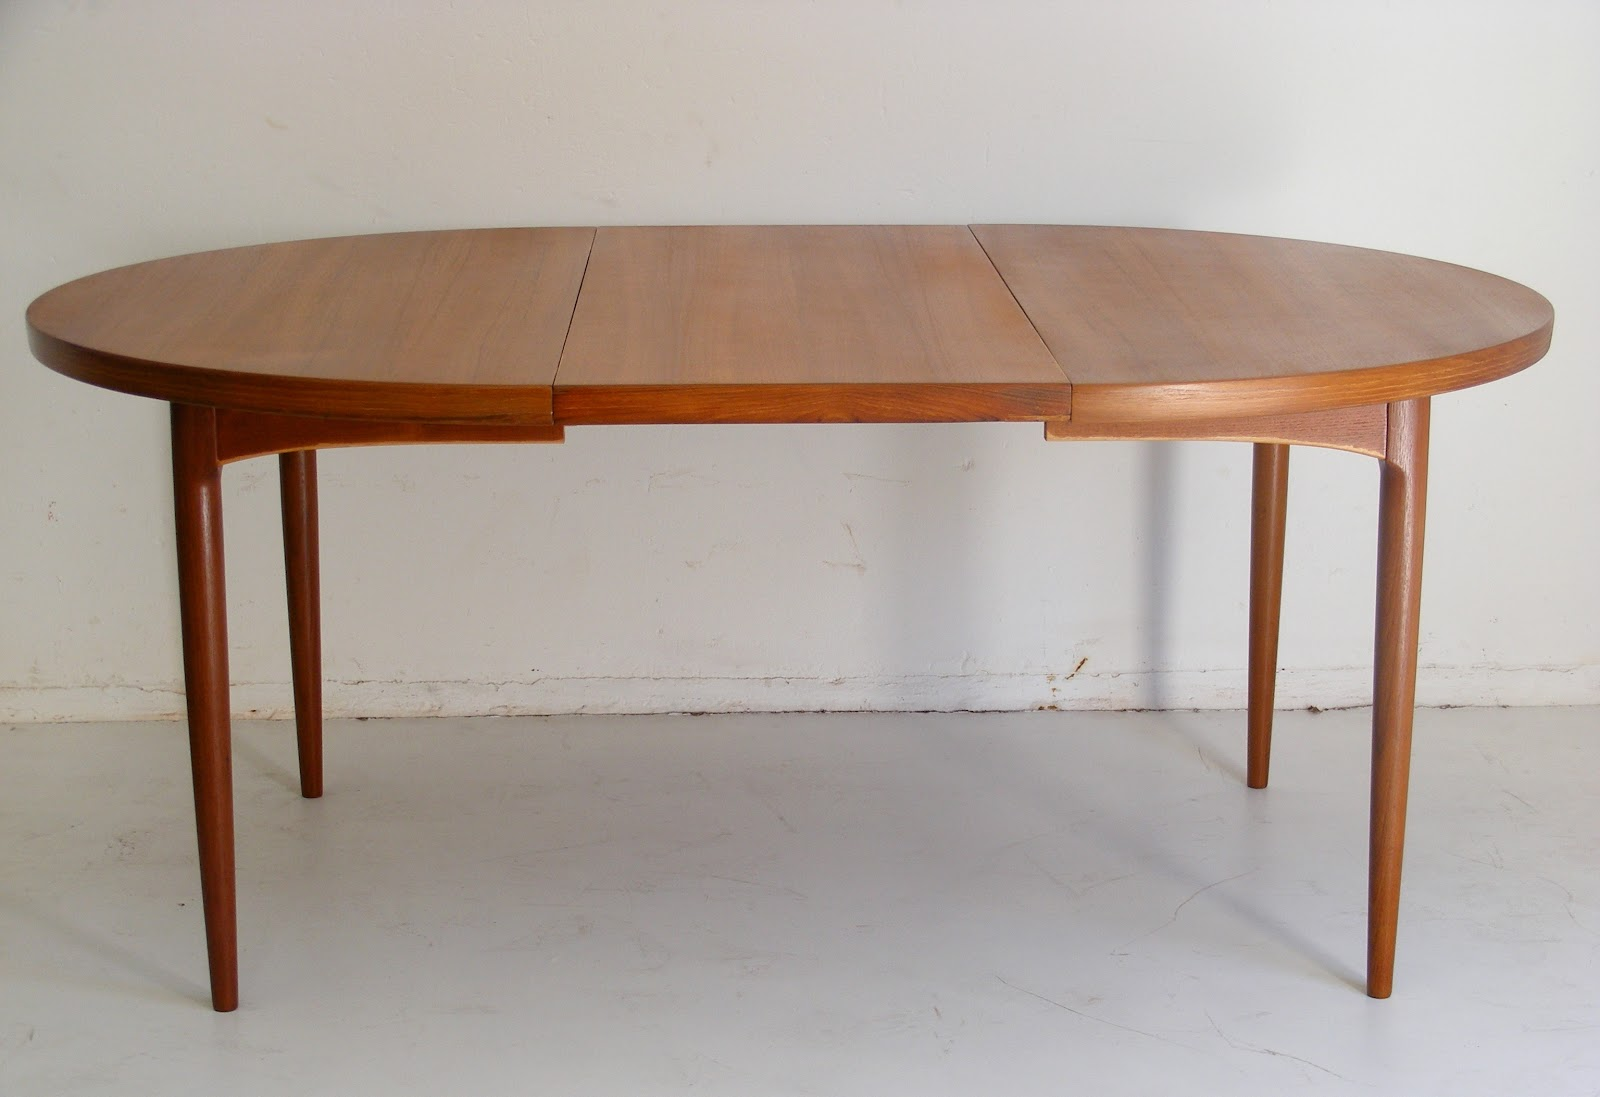 Modern Expandable Round Dining Table 10 Seater Oak Dining Table Images Seater Table Dining Used Oak